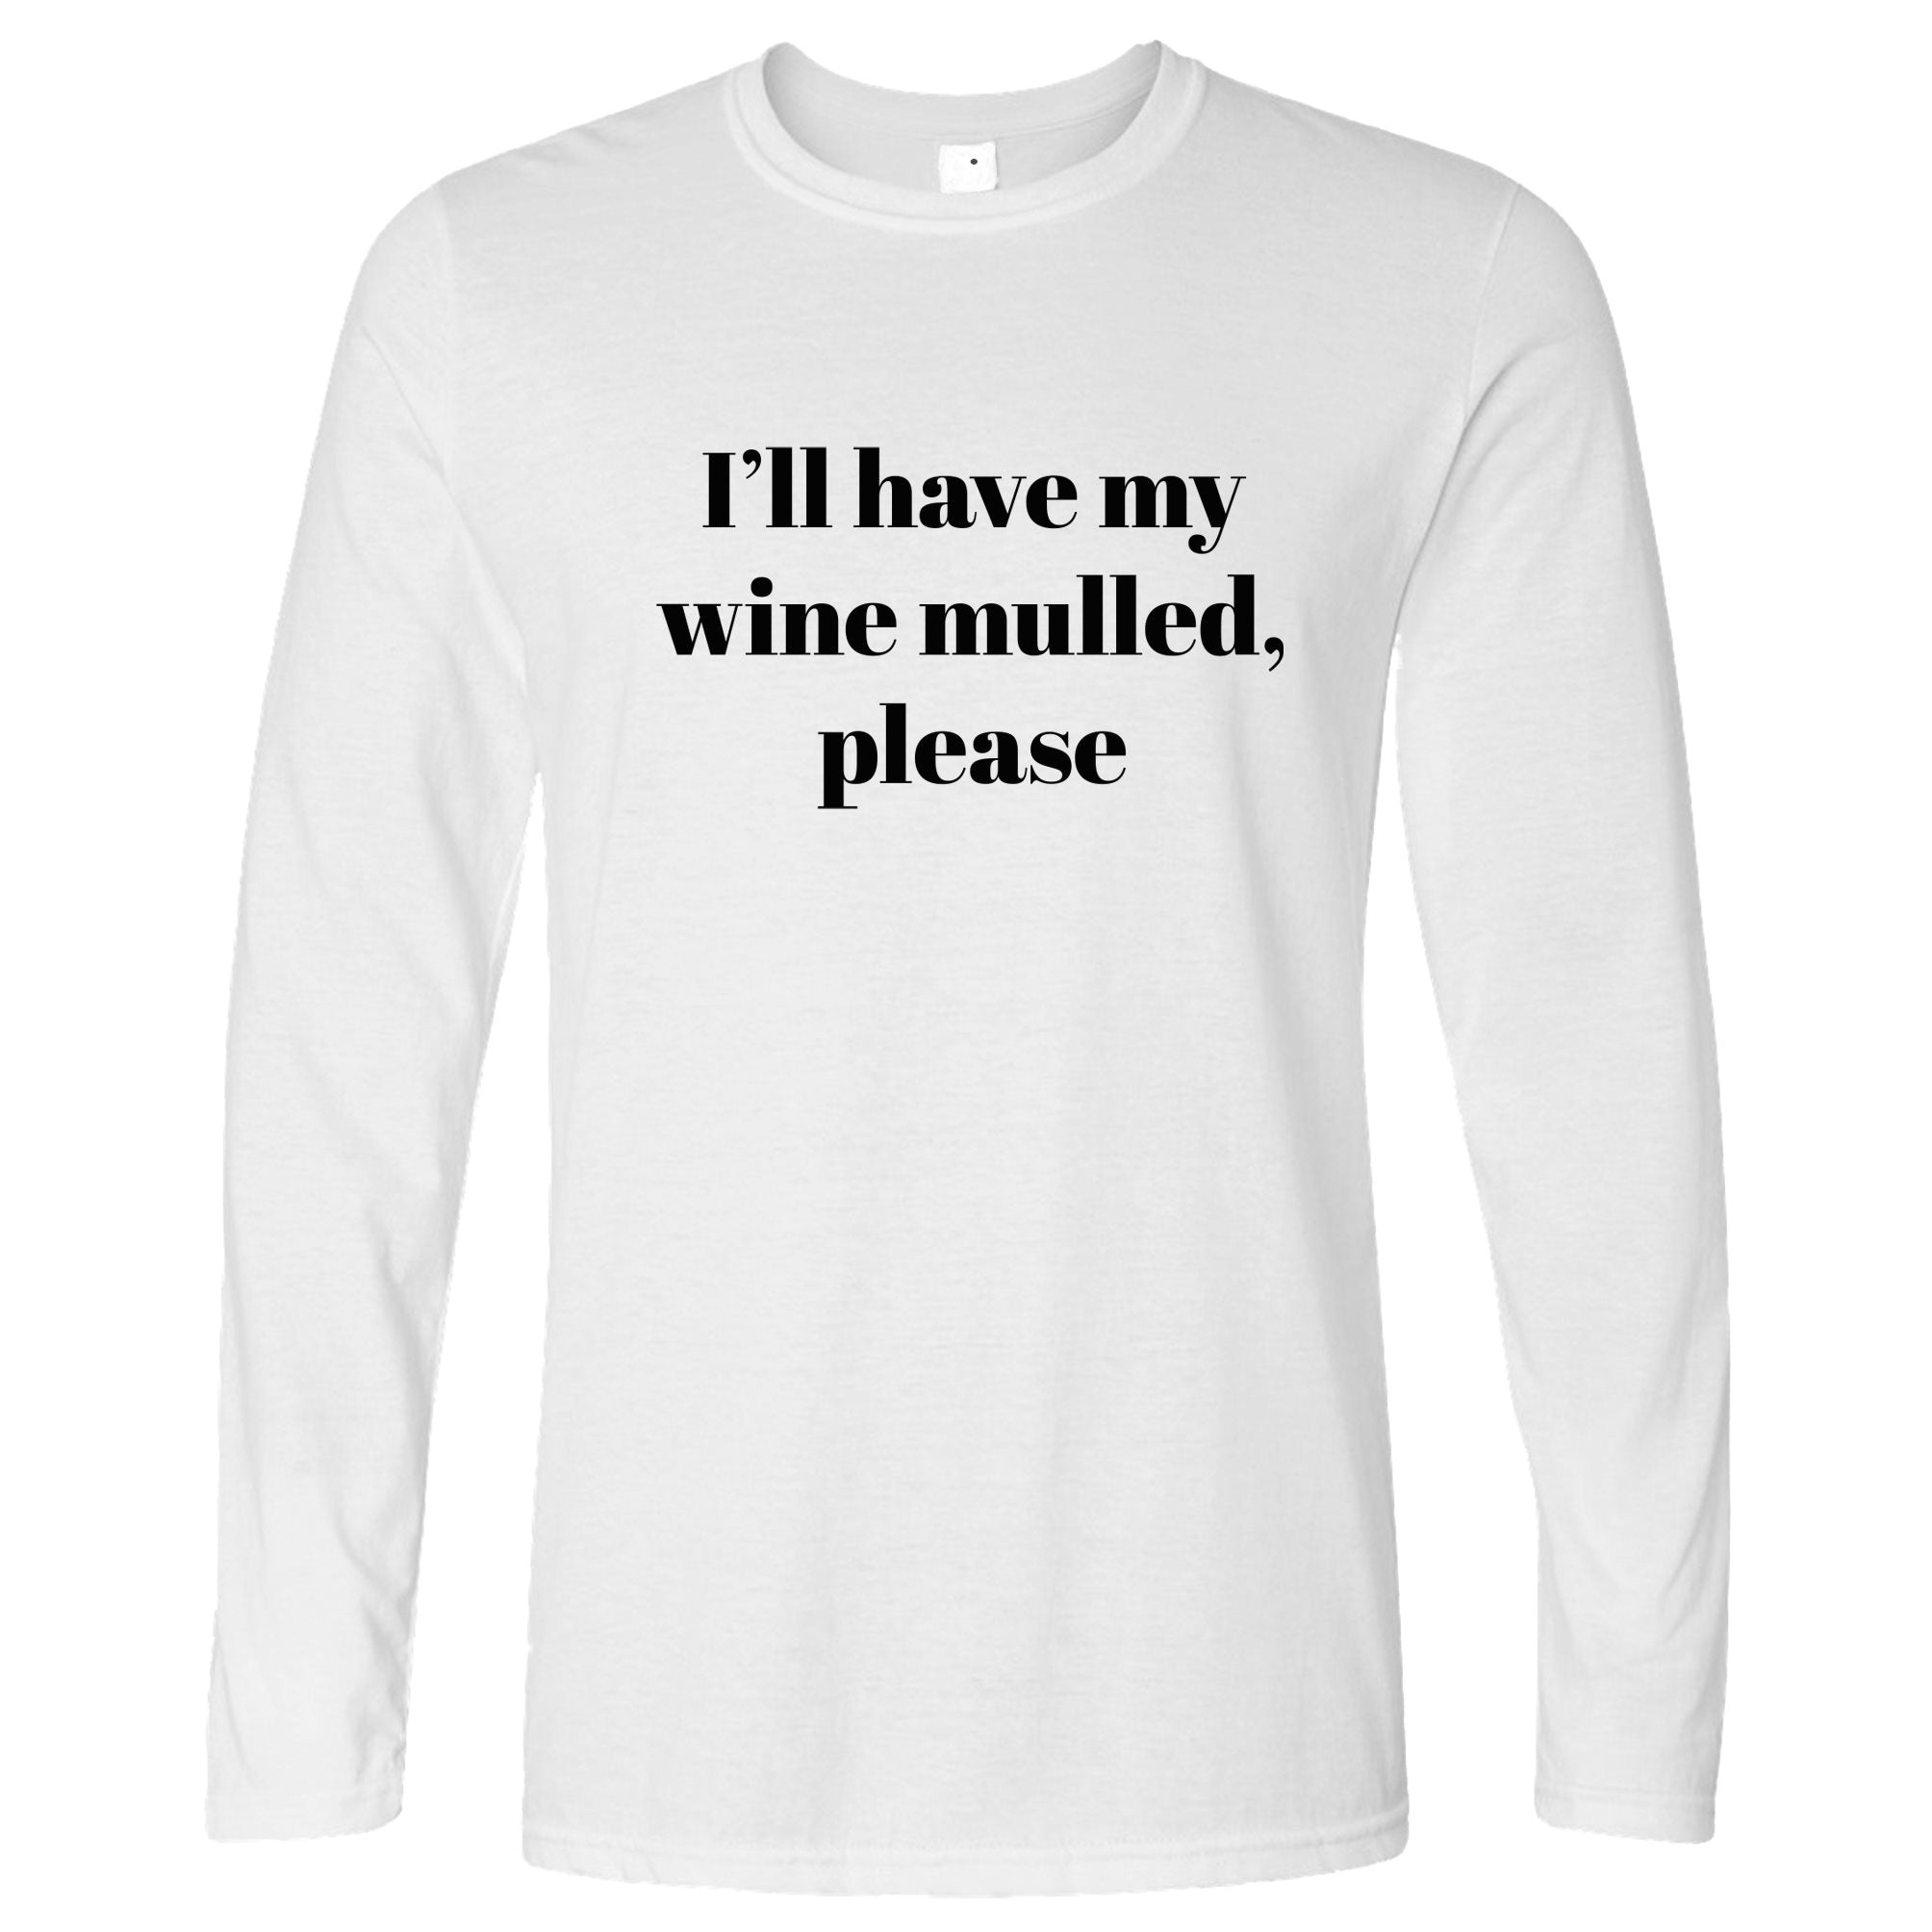 Joke Xmas Long Sleeve I'll Have My Wine Mulled Please T-Shirt